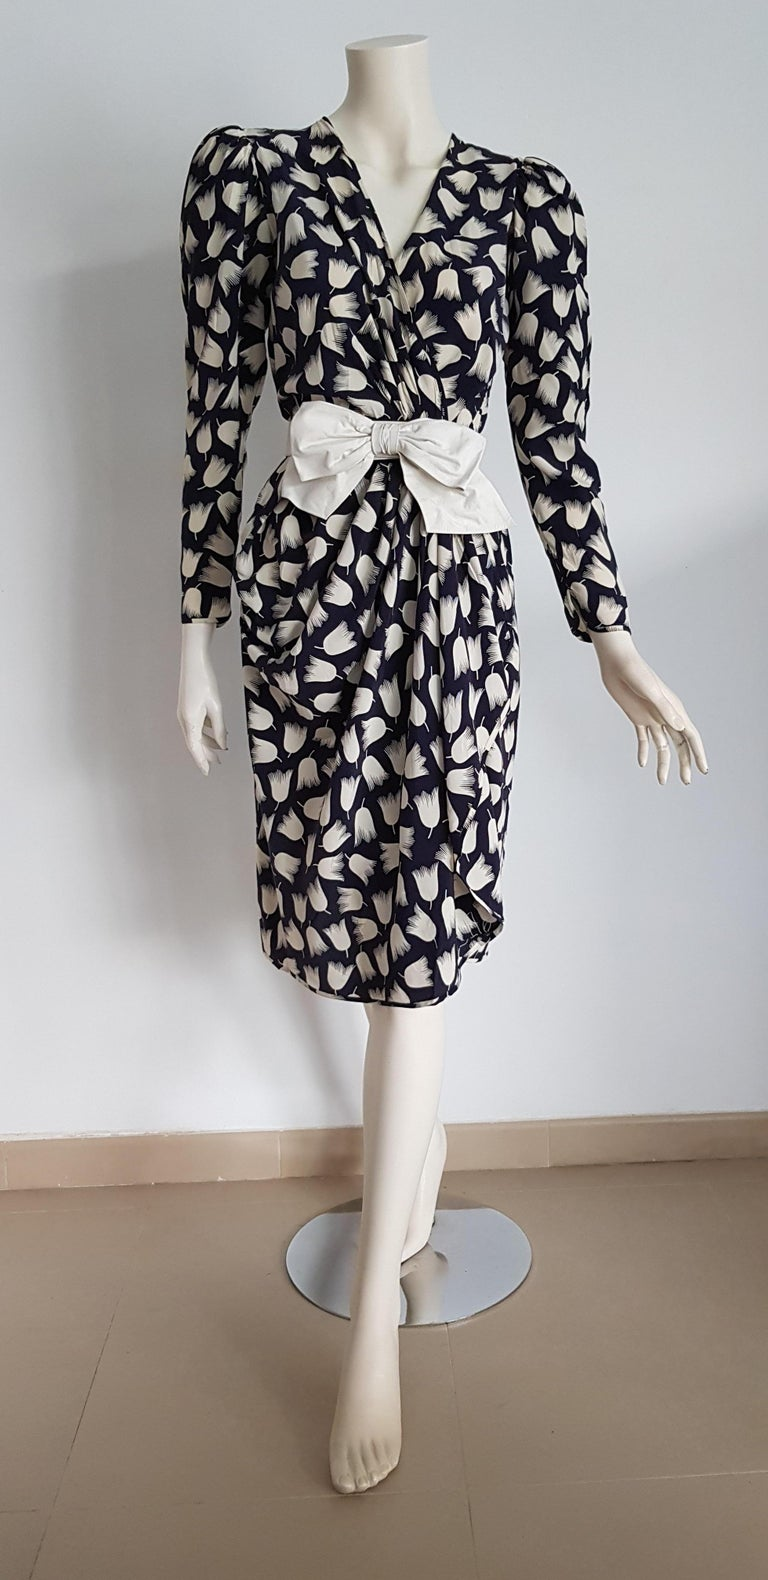 VALENTINO Haute Couture, black, white tulips belt with bow, silk dress - Unworn, New.  SIZE: equivalent to about Small / Medium, please review approx measurements as follows in cm: lenght 108, chest underarm to underarm 50, bust circumference 91,